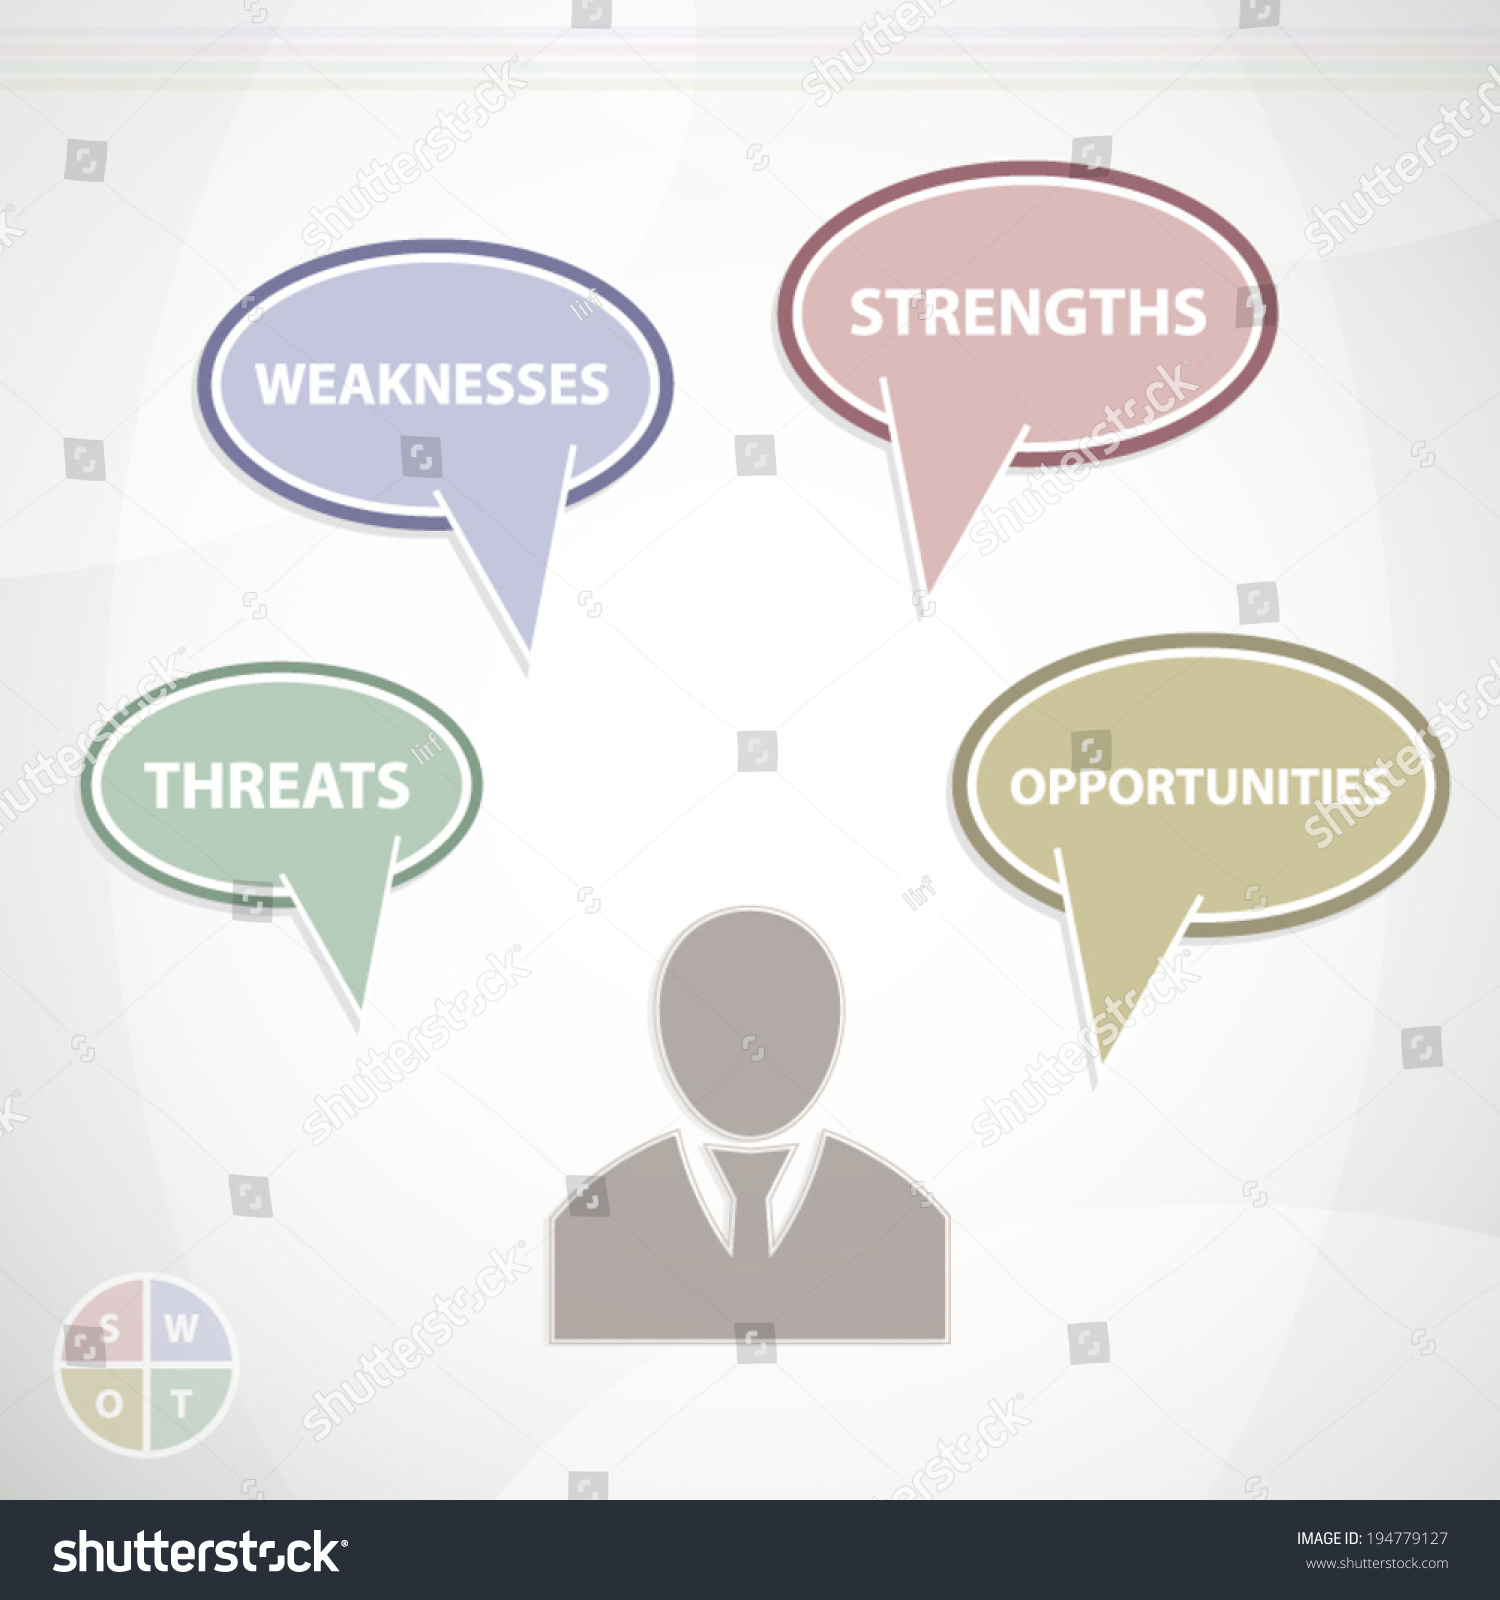 swot analysis poster weaknesses strengths threats swot analysis poster weaknesses strengths threats opportunities speech bubbles and businessman silhouette illustration 194779127 shutterstock